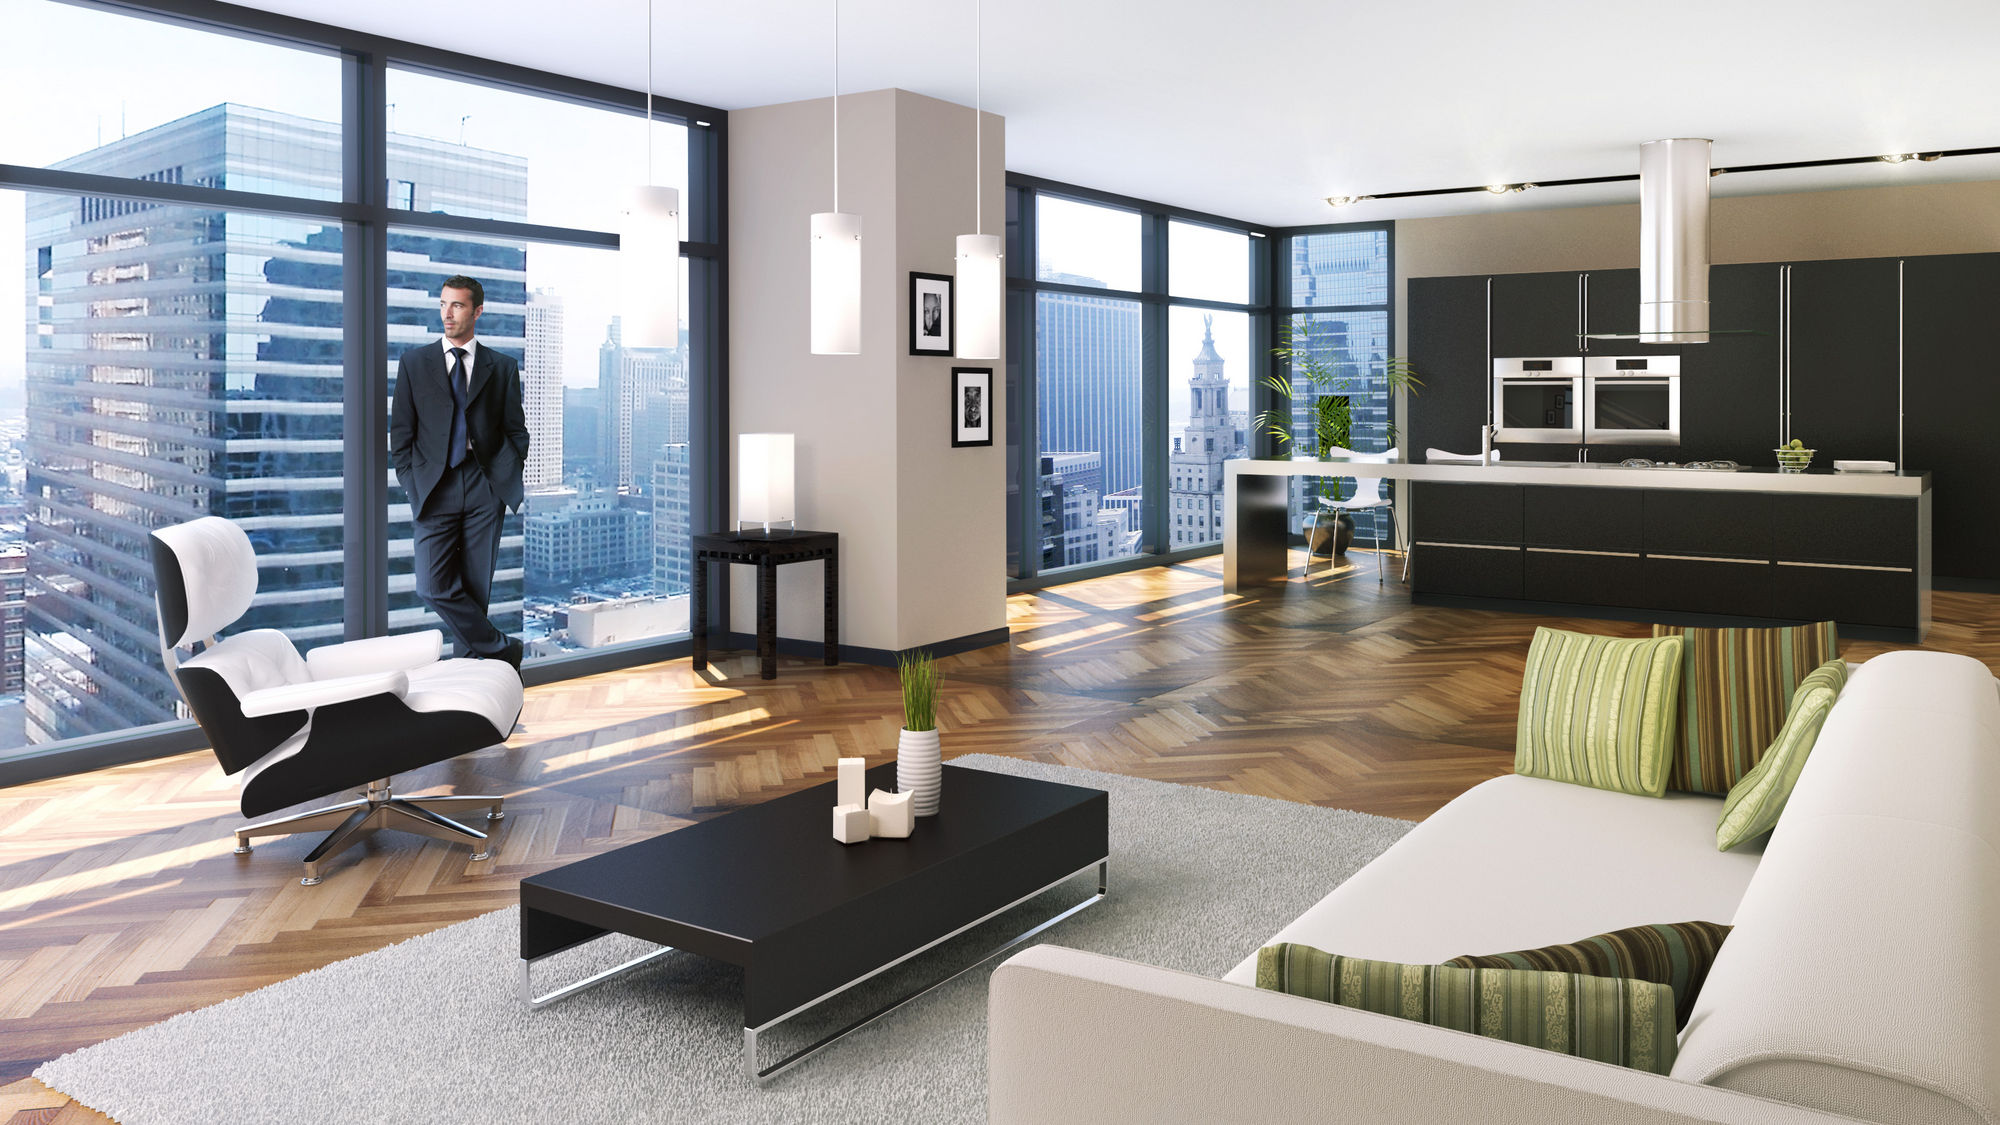 Top Reasons Why You Should Hire An Online Interior Designer